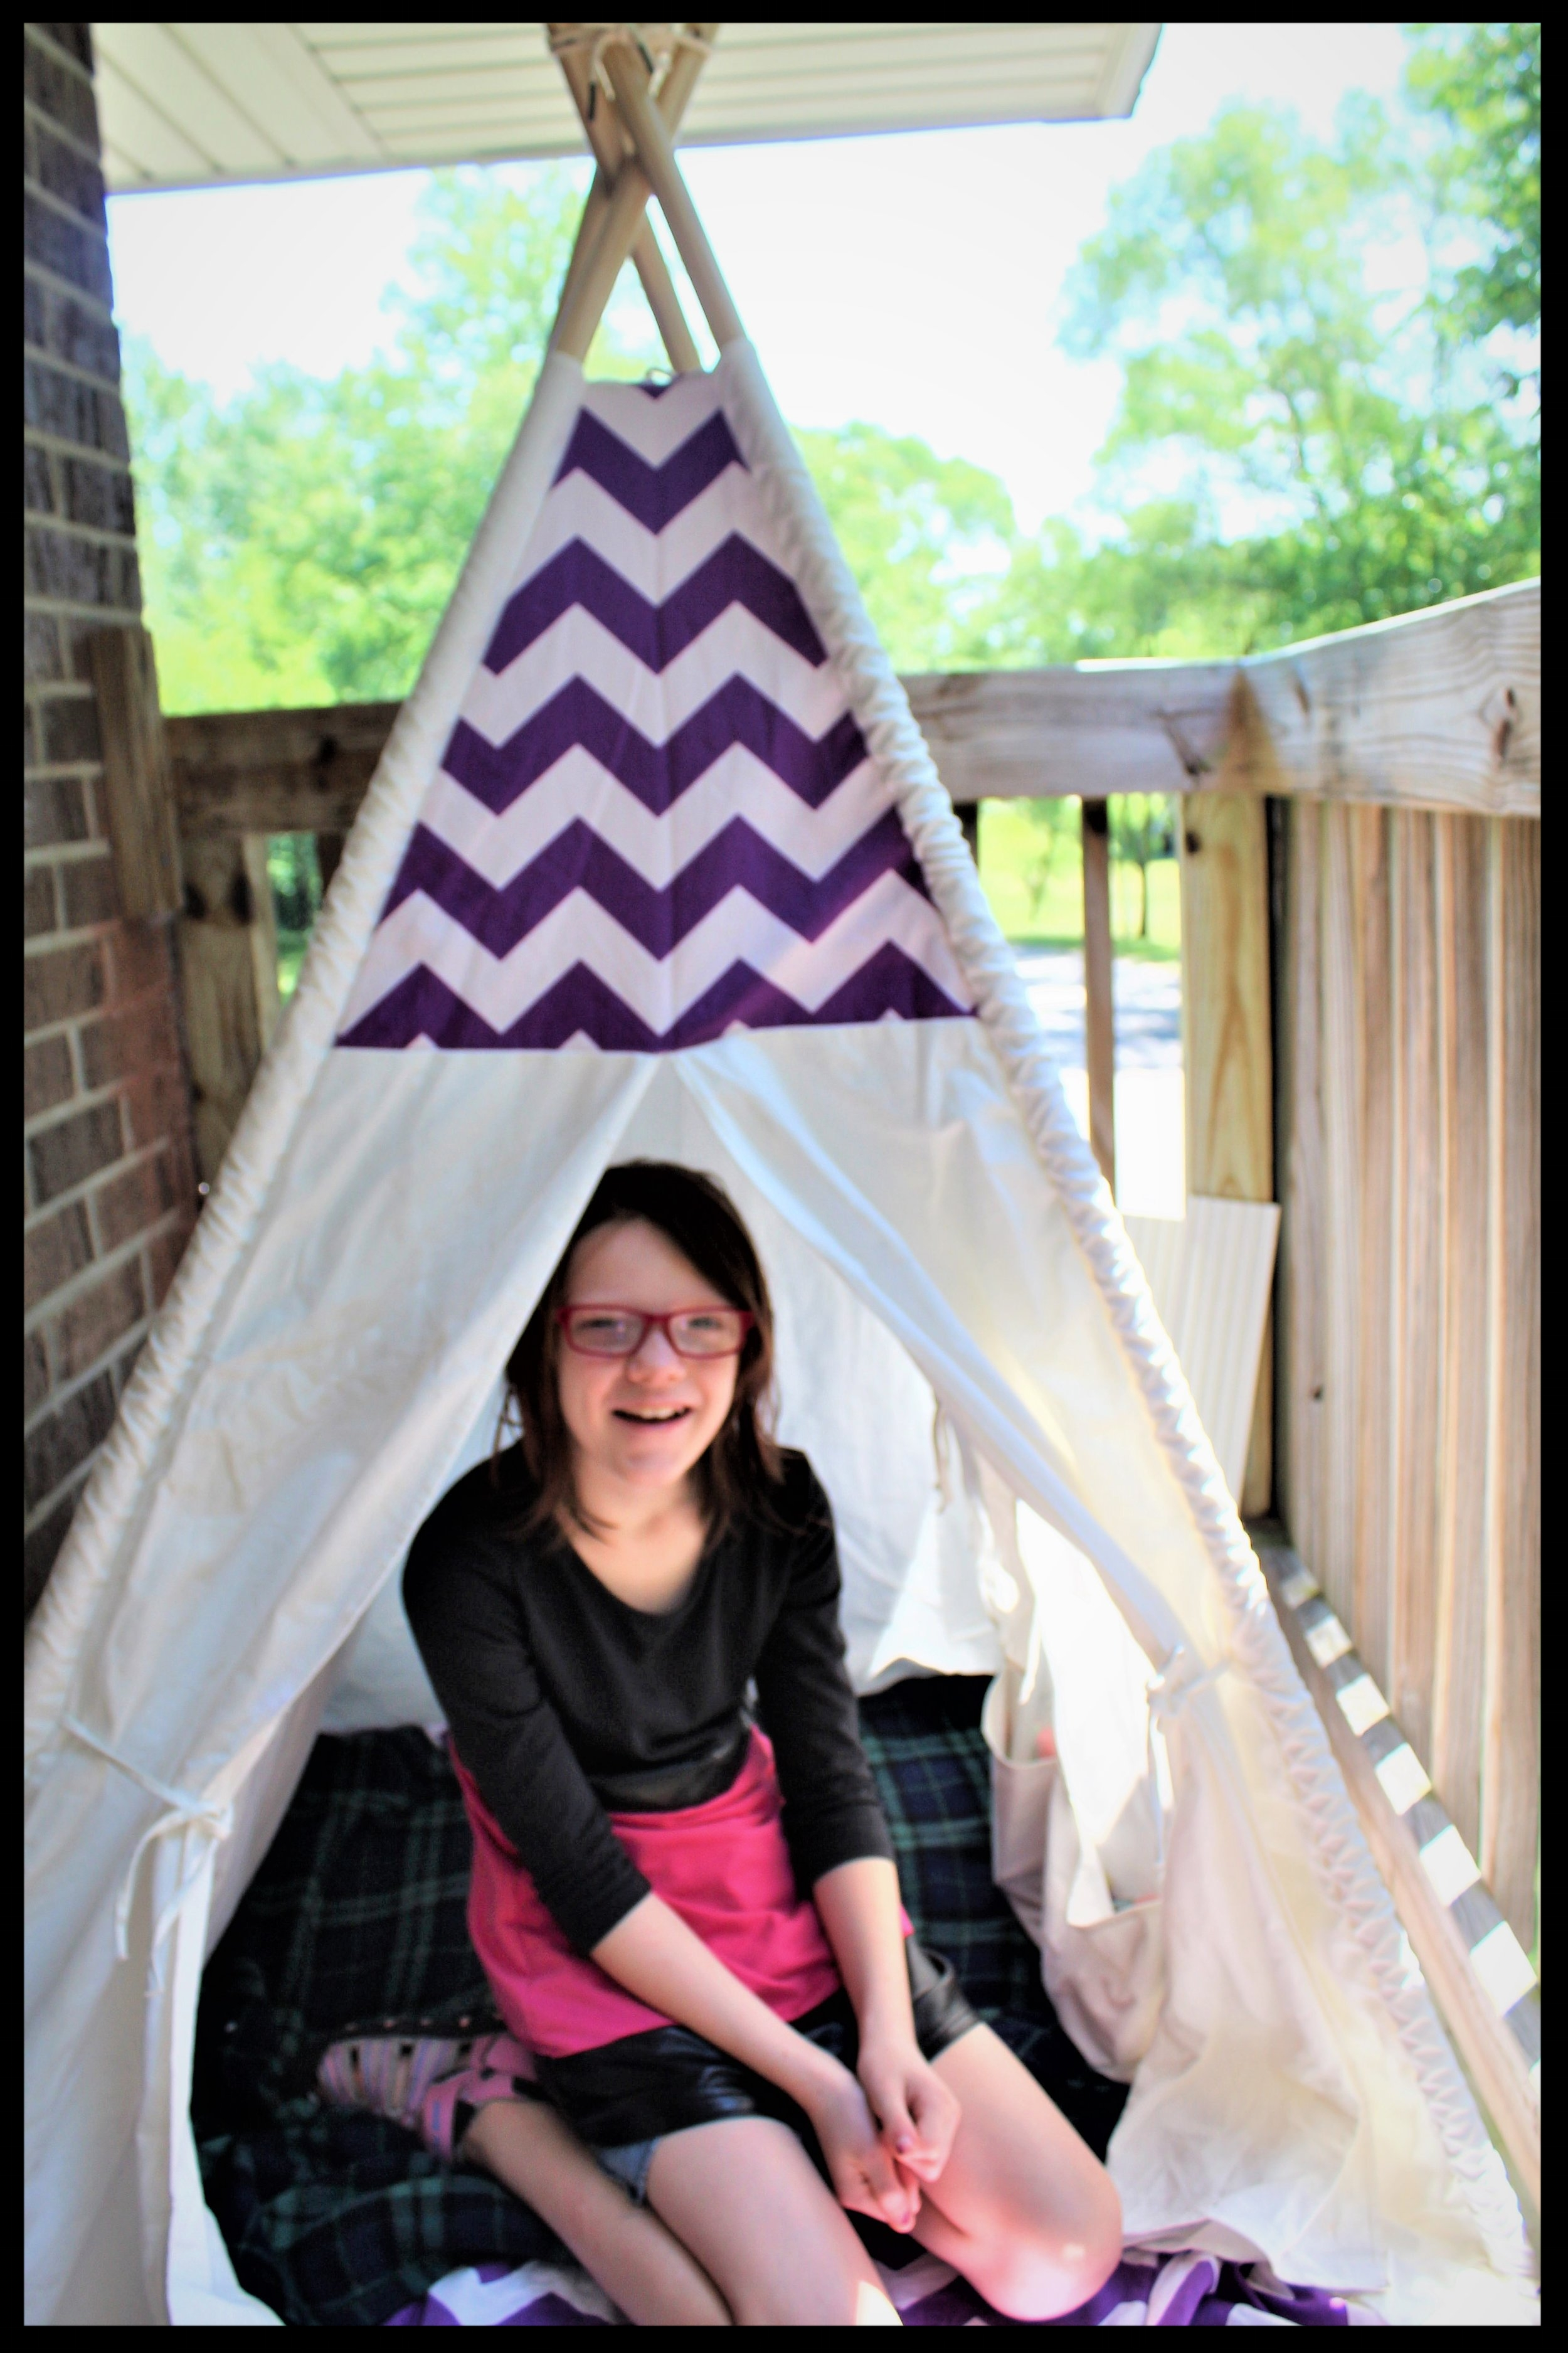 As you can see Bella was very willing to take photos inside the teepee and loved her teepee so much that she was almost in tears. Bella has wanted a mini reading spot of her own for ages. Usually she reads on her bed or the couch this way she get's outside and enjoys the fresh air all while being comfy. I love that there is also room for a light so she can sit out on the deck at night and read too.